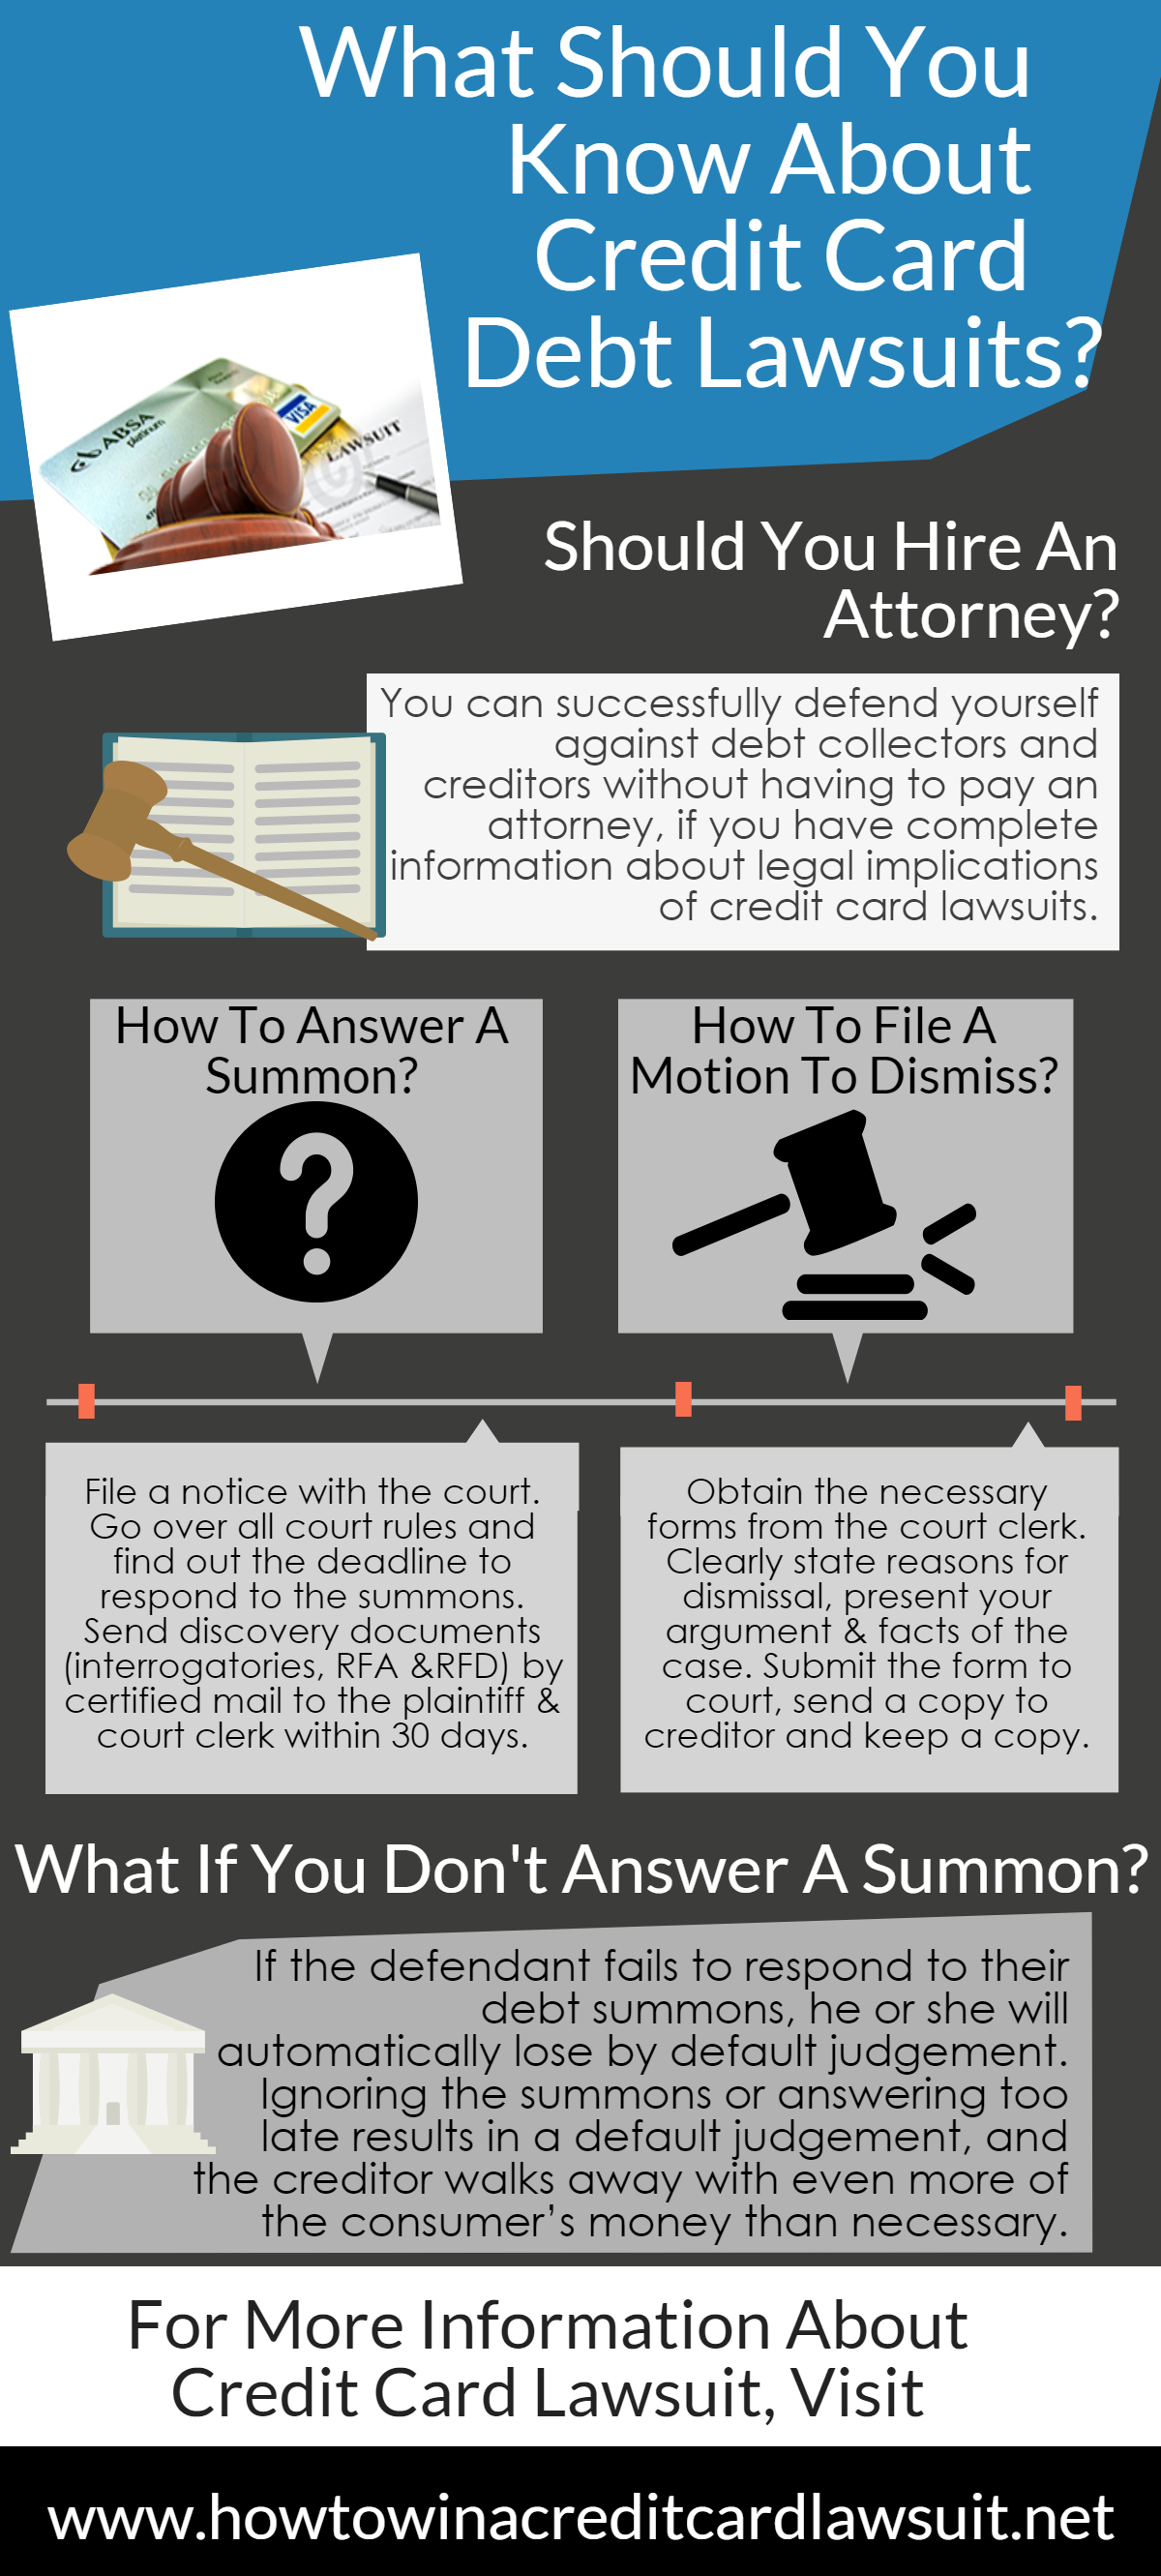 Sample Answer To Summons Answers Credit Card Getting Things Done